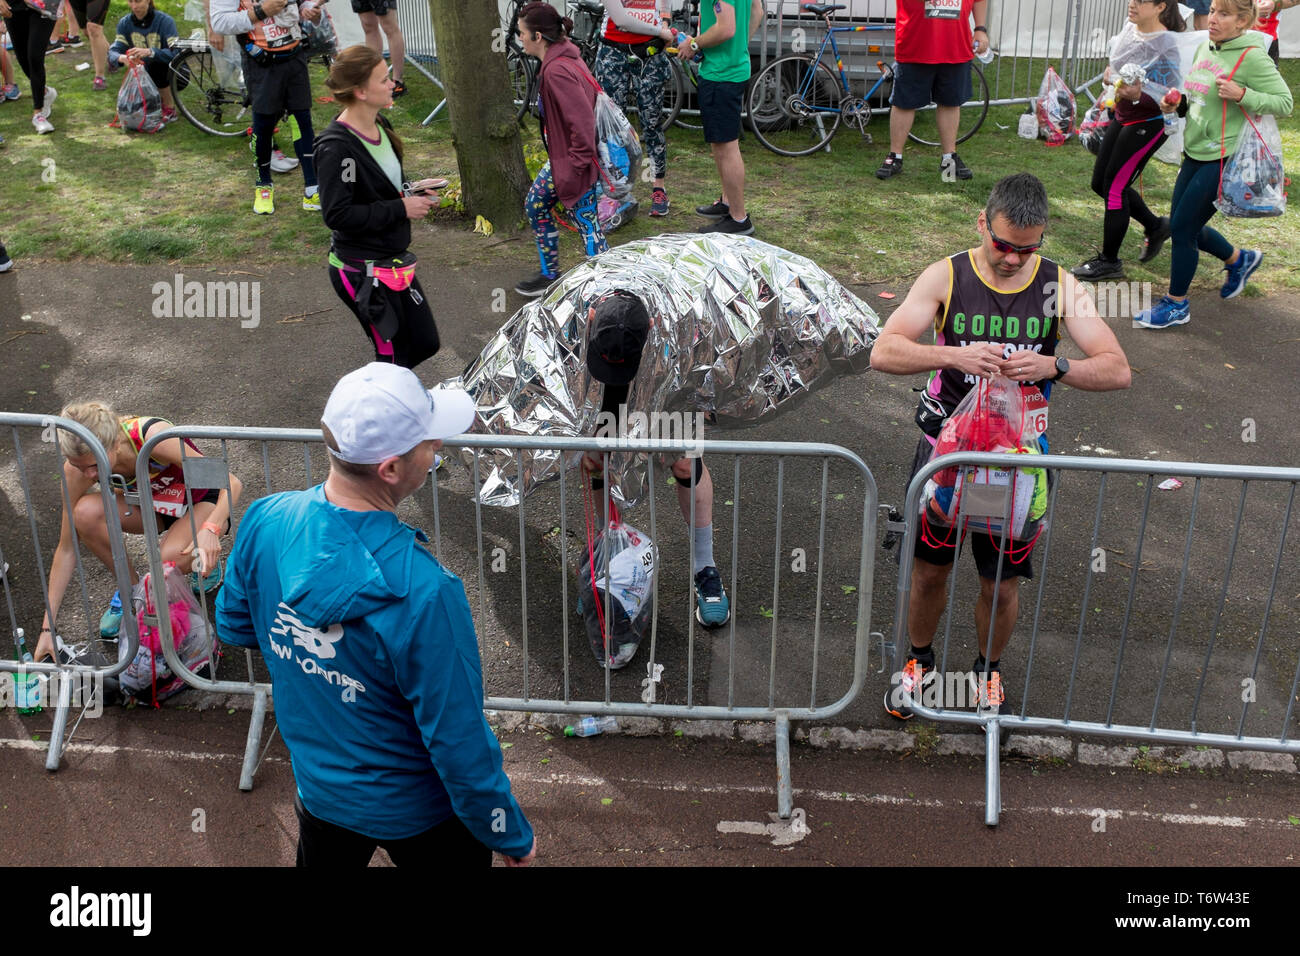 Local London park run volunteers load runners' bags into the lorries in Greenwich Park before the start of the 2019 London Marathon, on 28th April 2019, in London, England Stock Photo